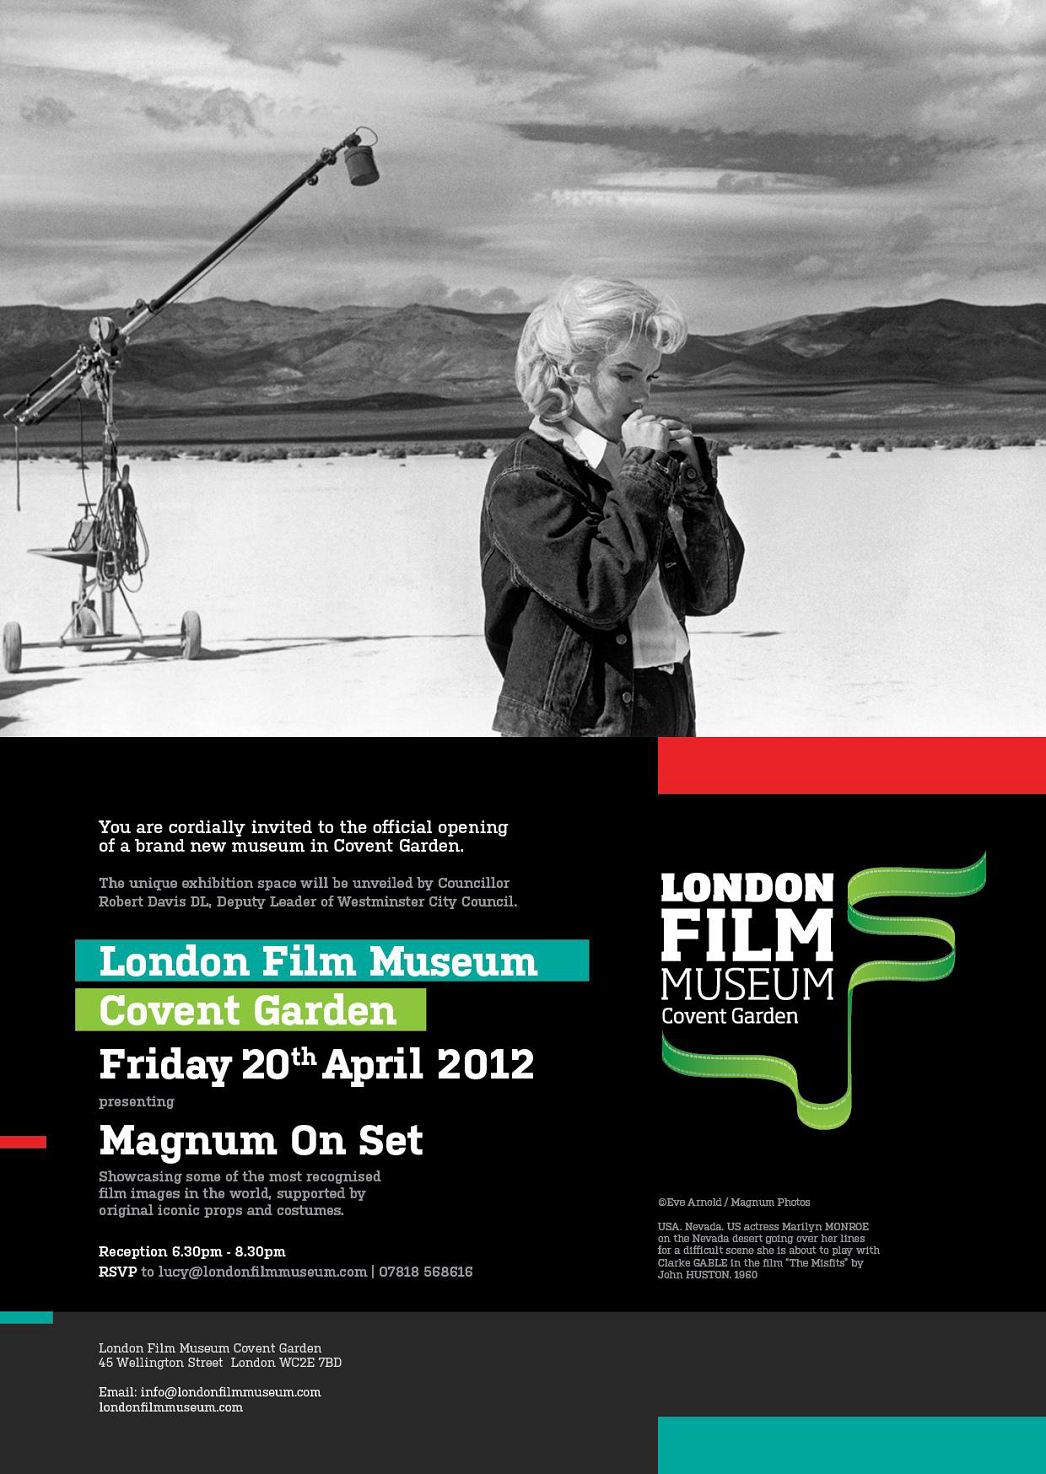 London film museum (Magnum on set)